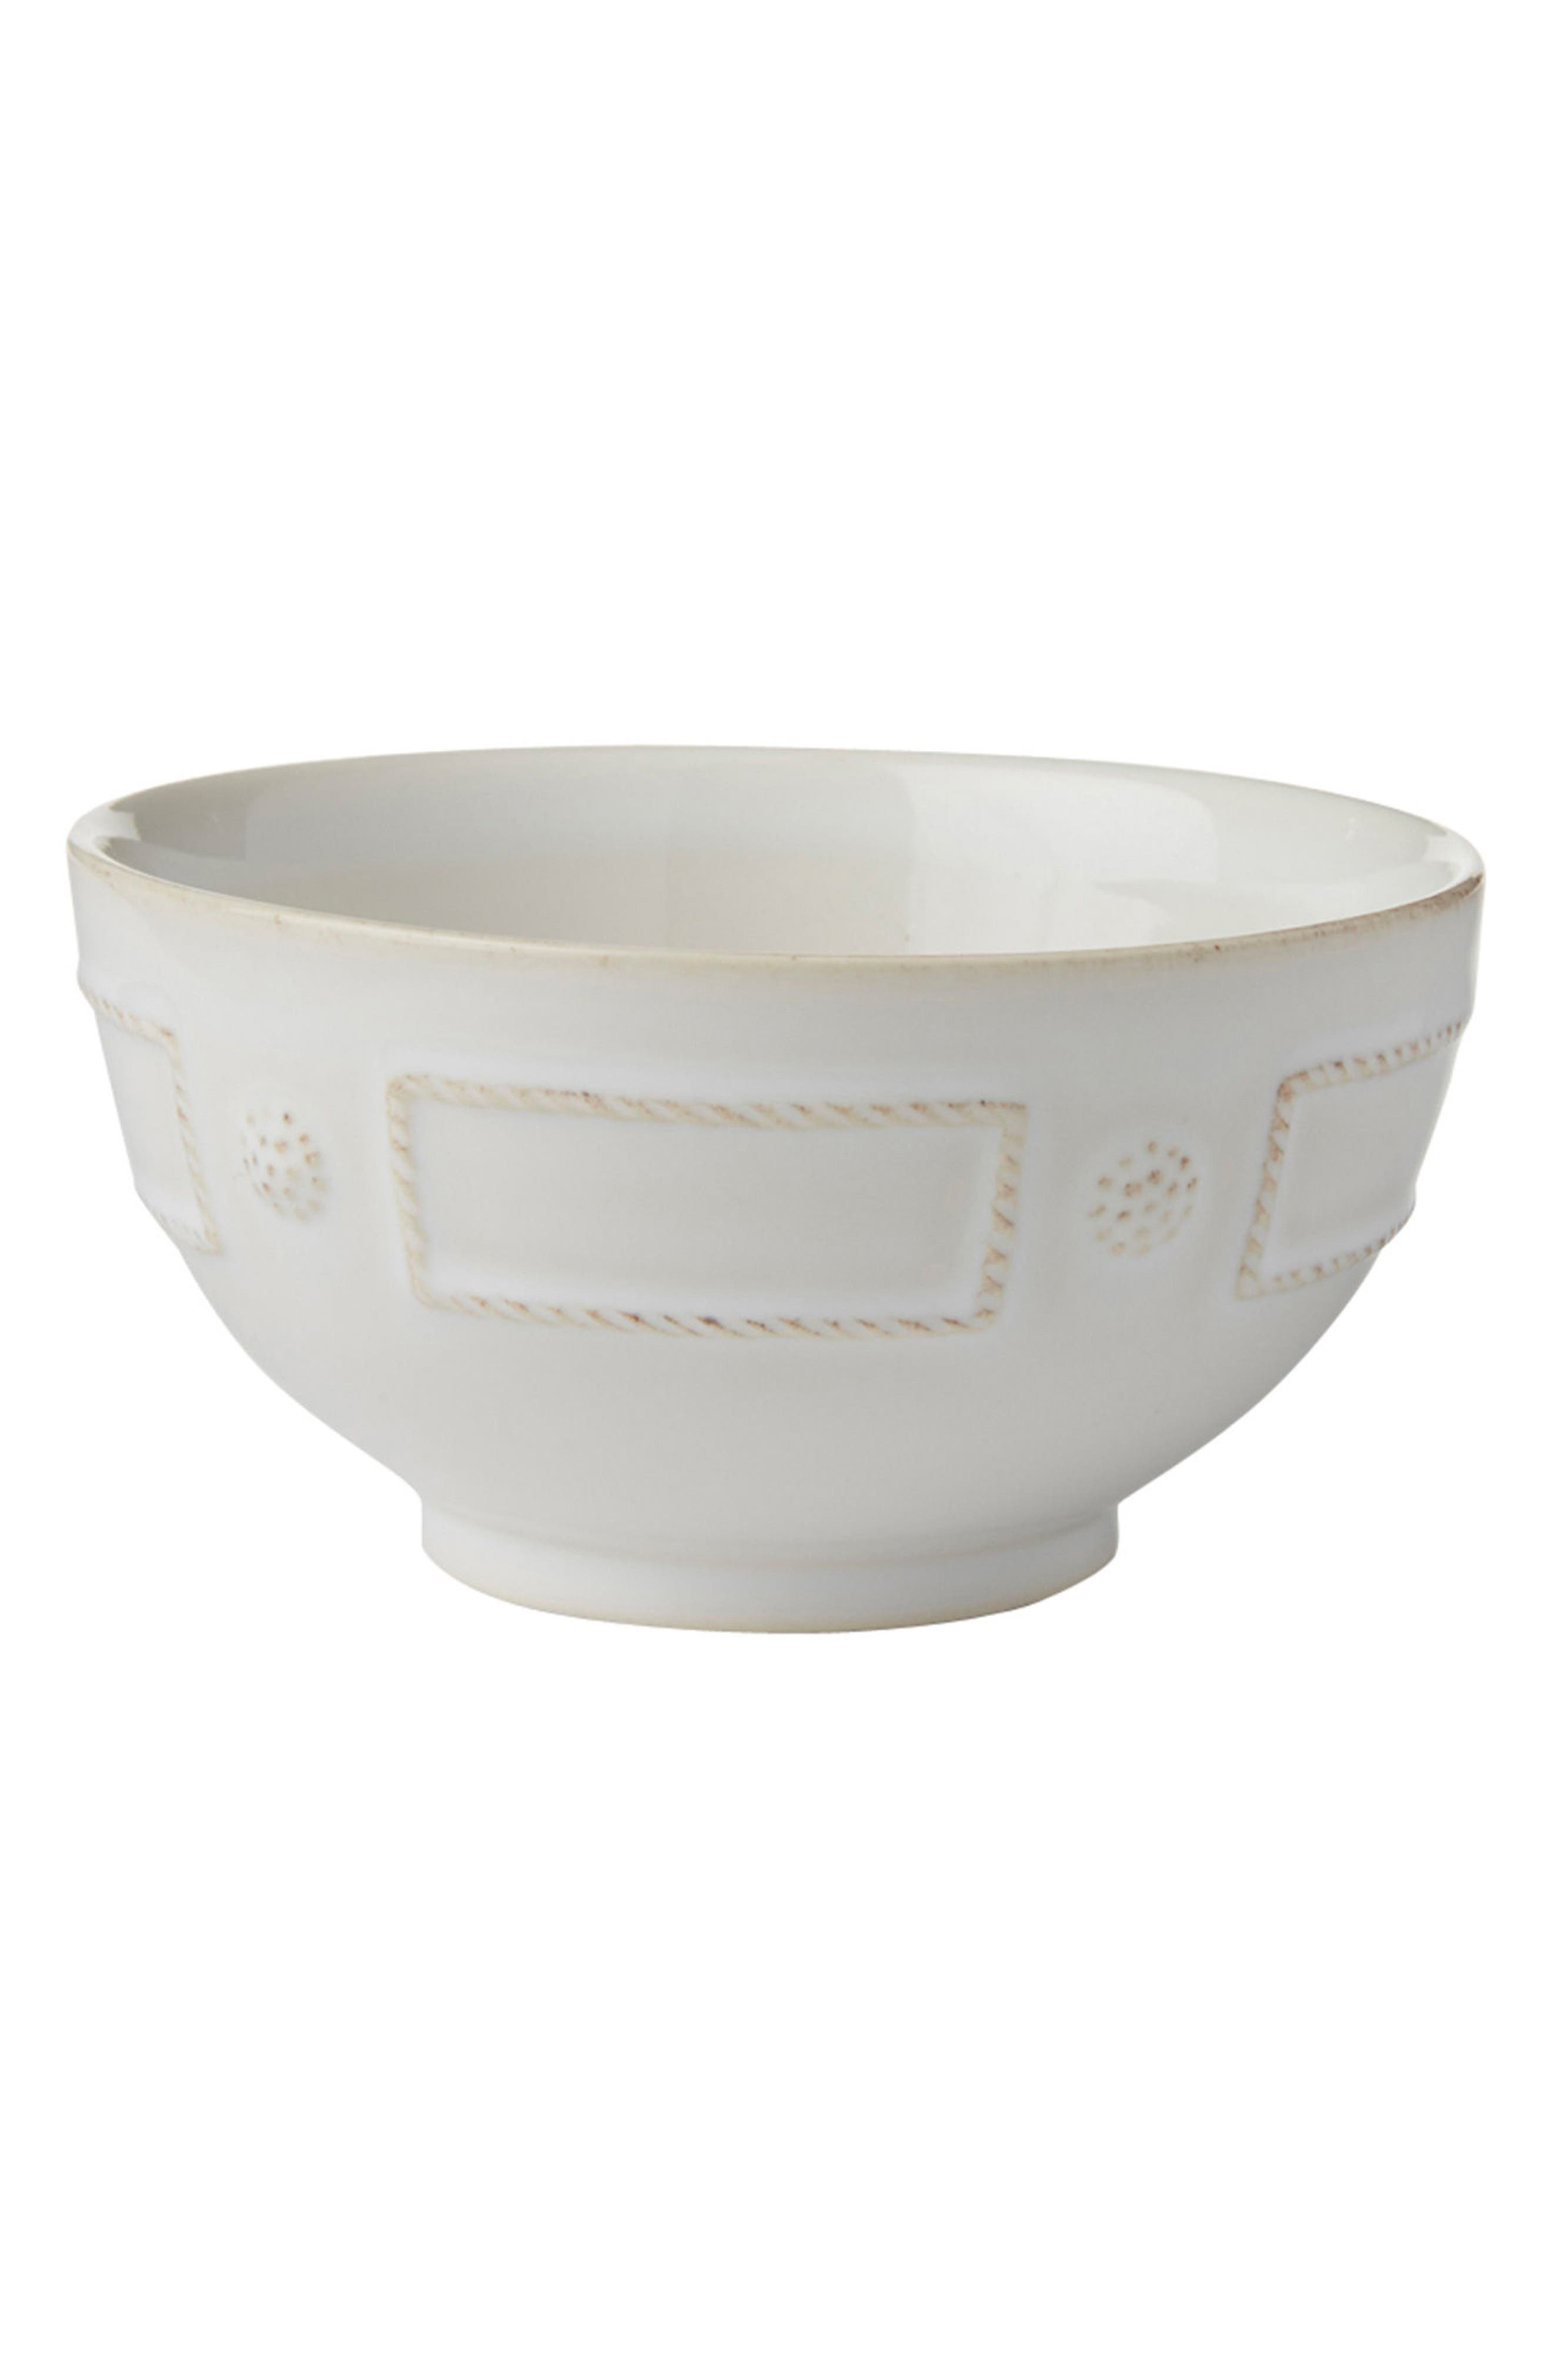 Main Image - Juliska Berry & Thread French Panel Ceramic Cereal Bowl